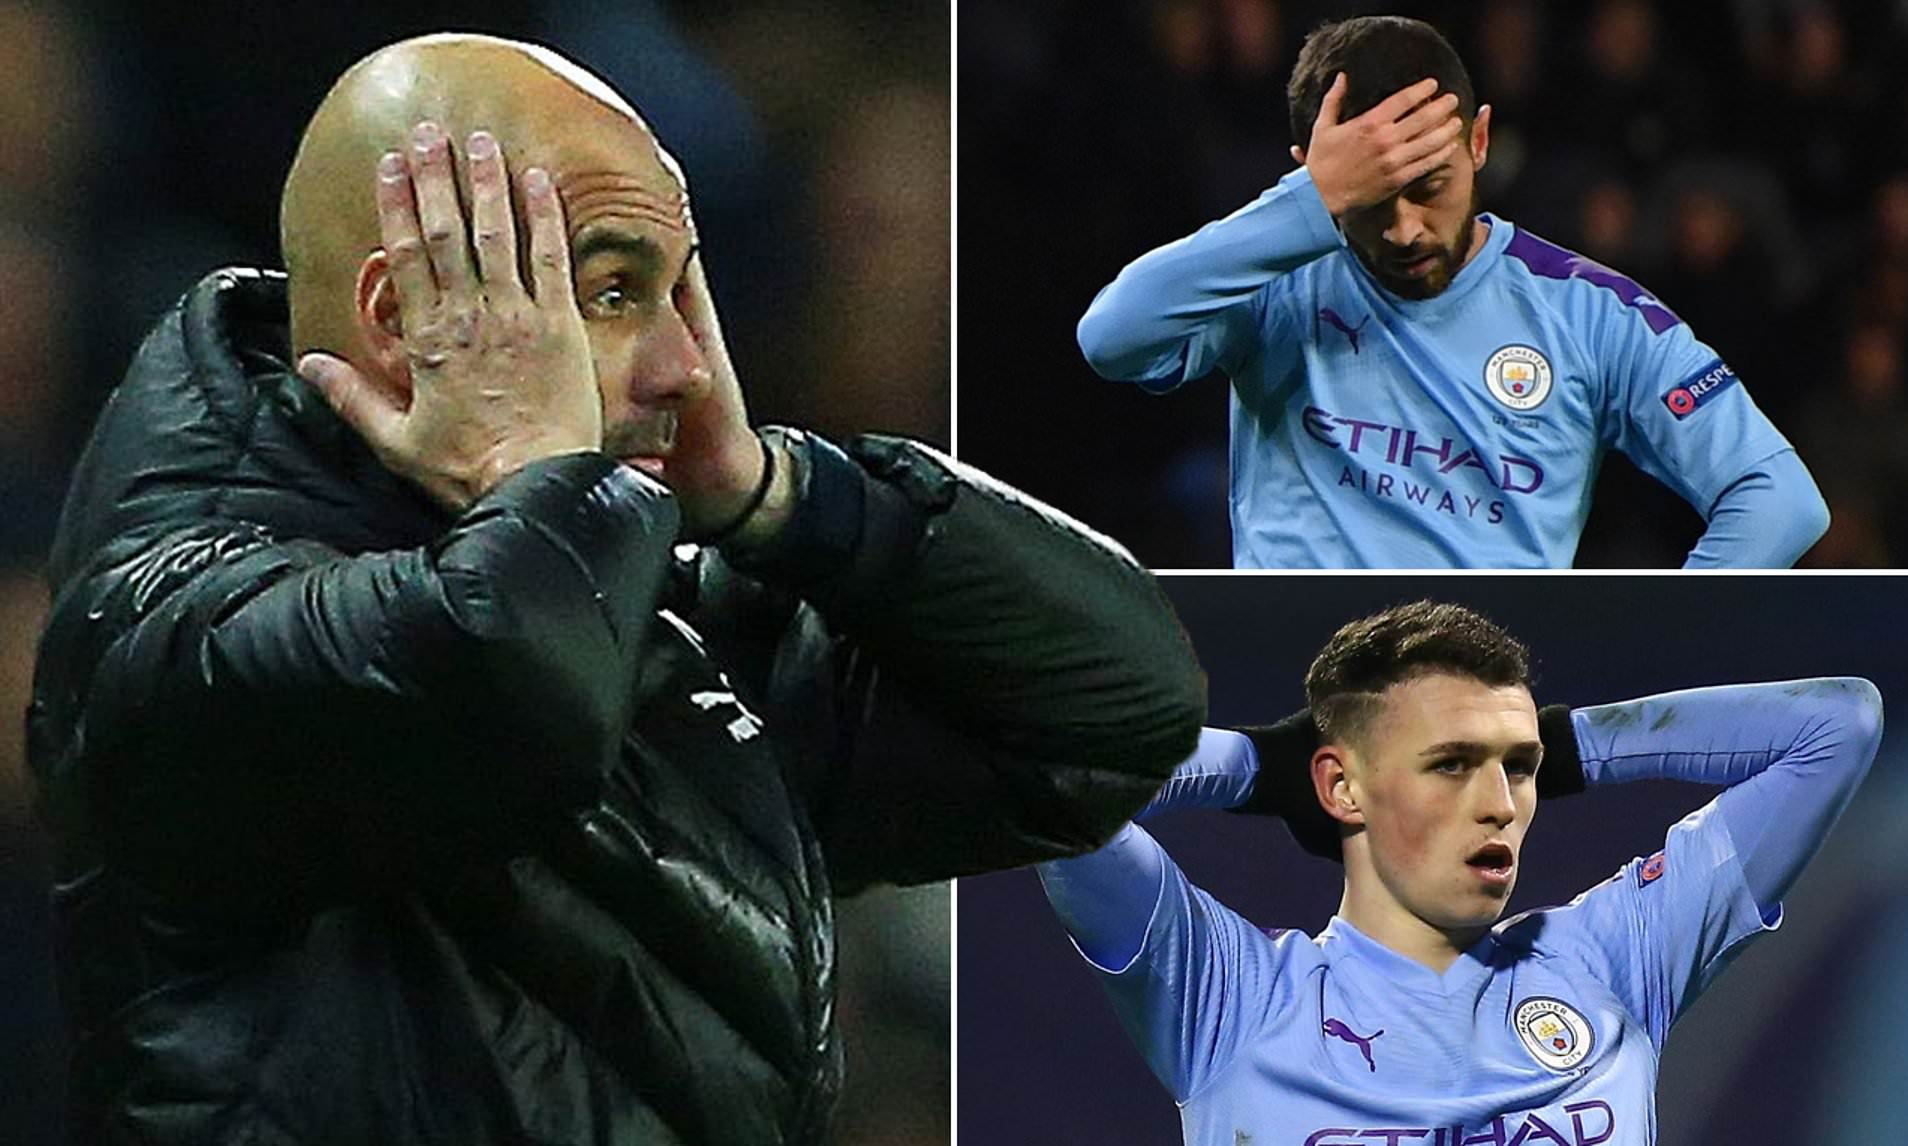 Man City To Face Premier League Points Deduction After UEFA Ban